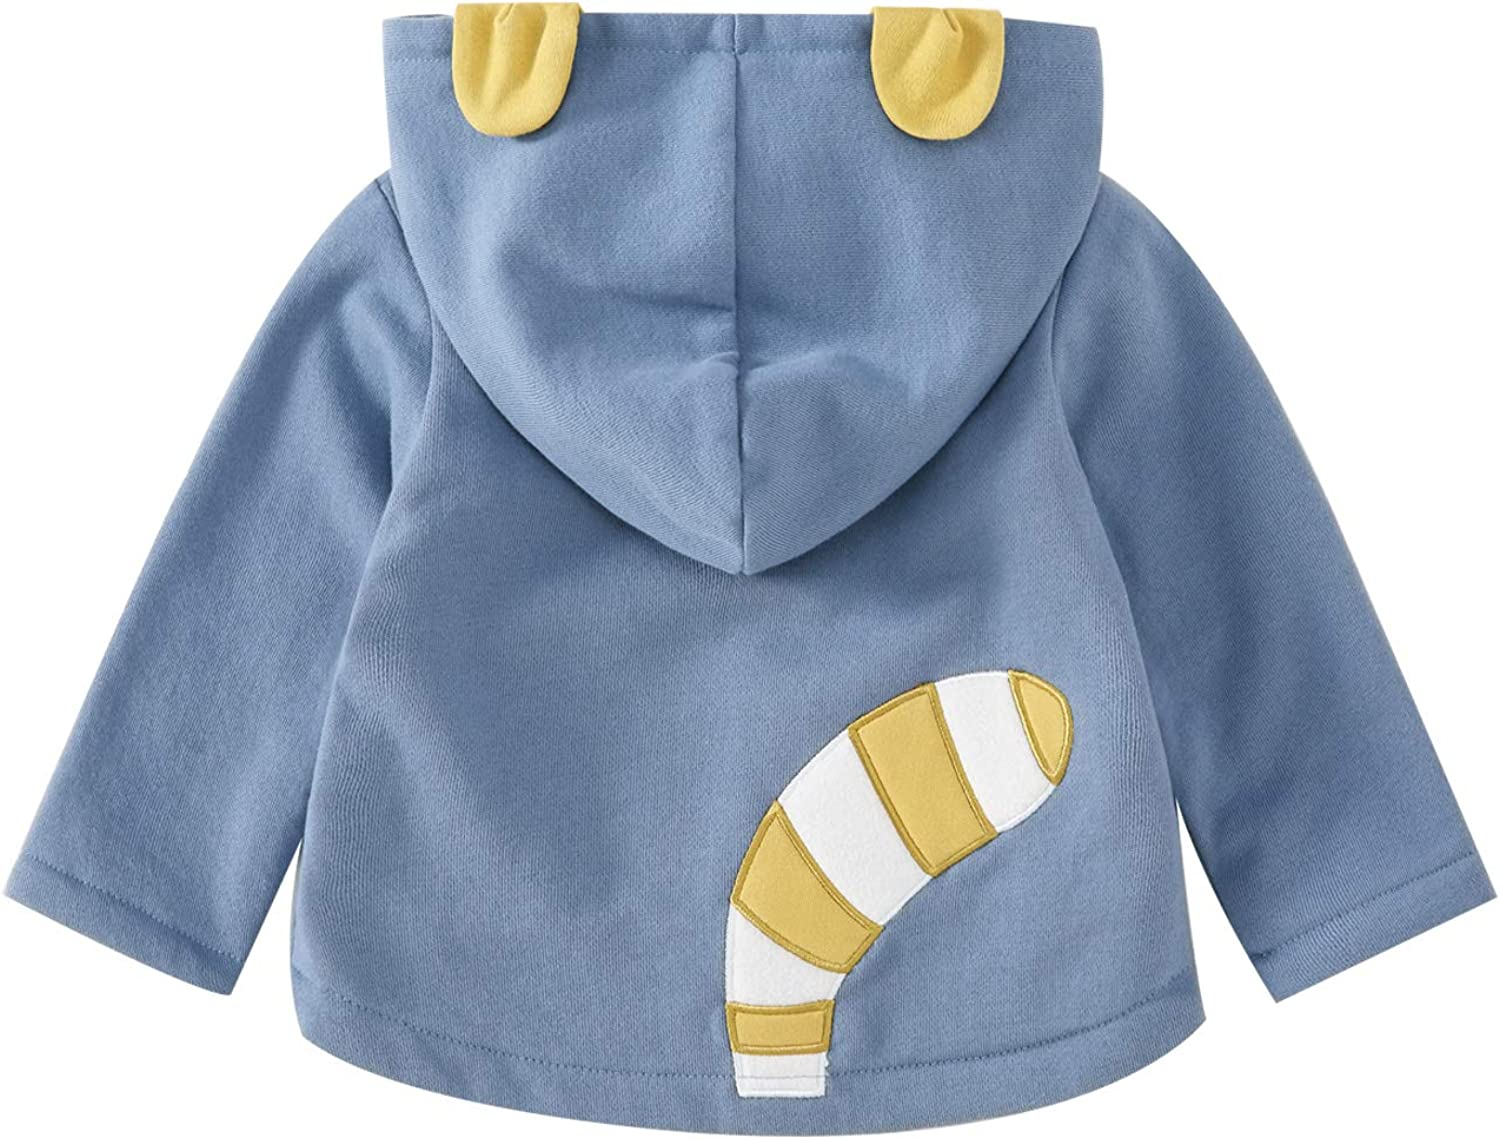 pureborn Infant Toddler Baby Boys Long Sleeve Hooded Jacket Warm Coat Outfit